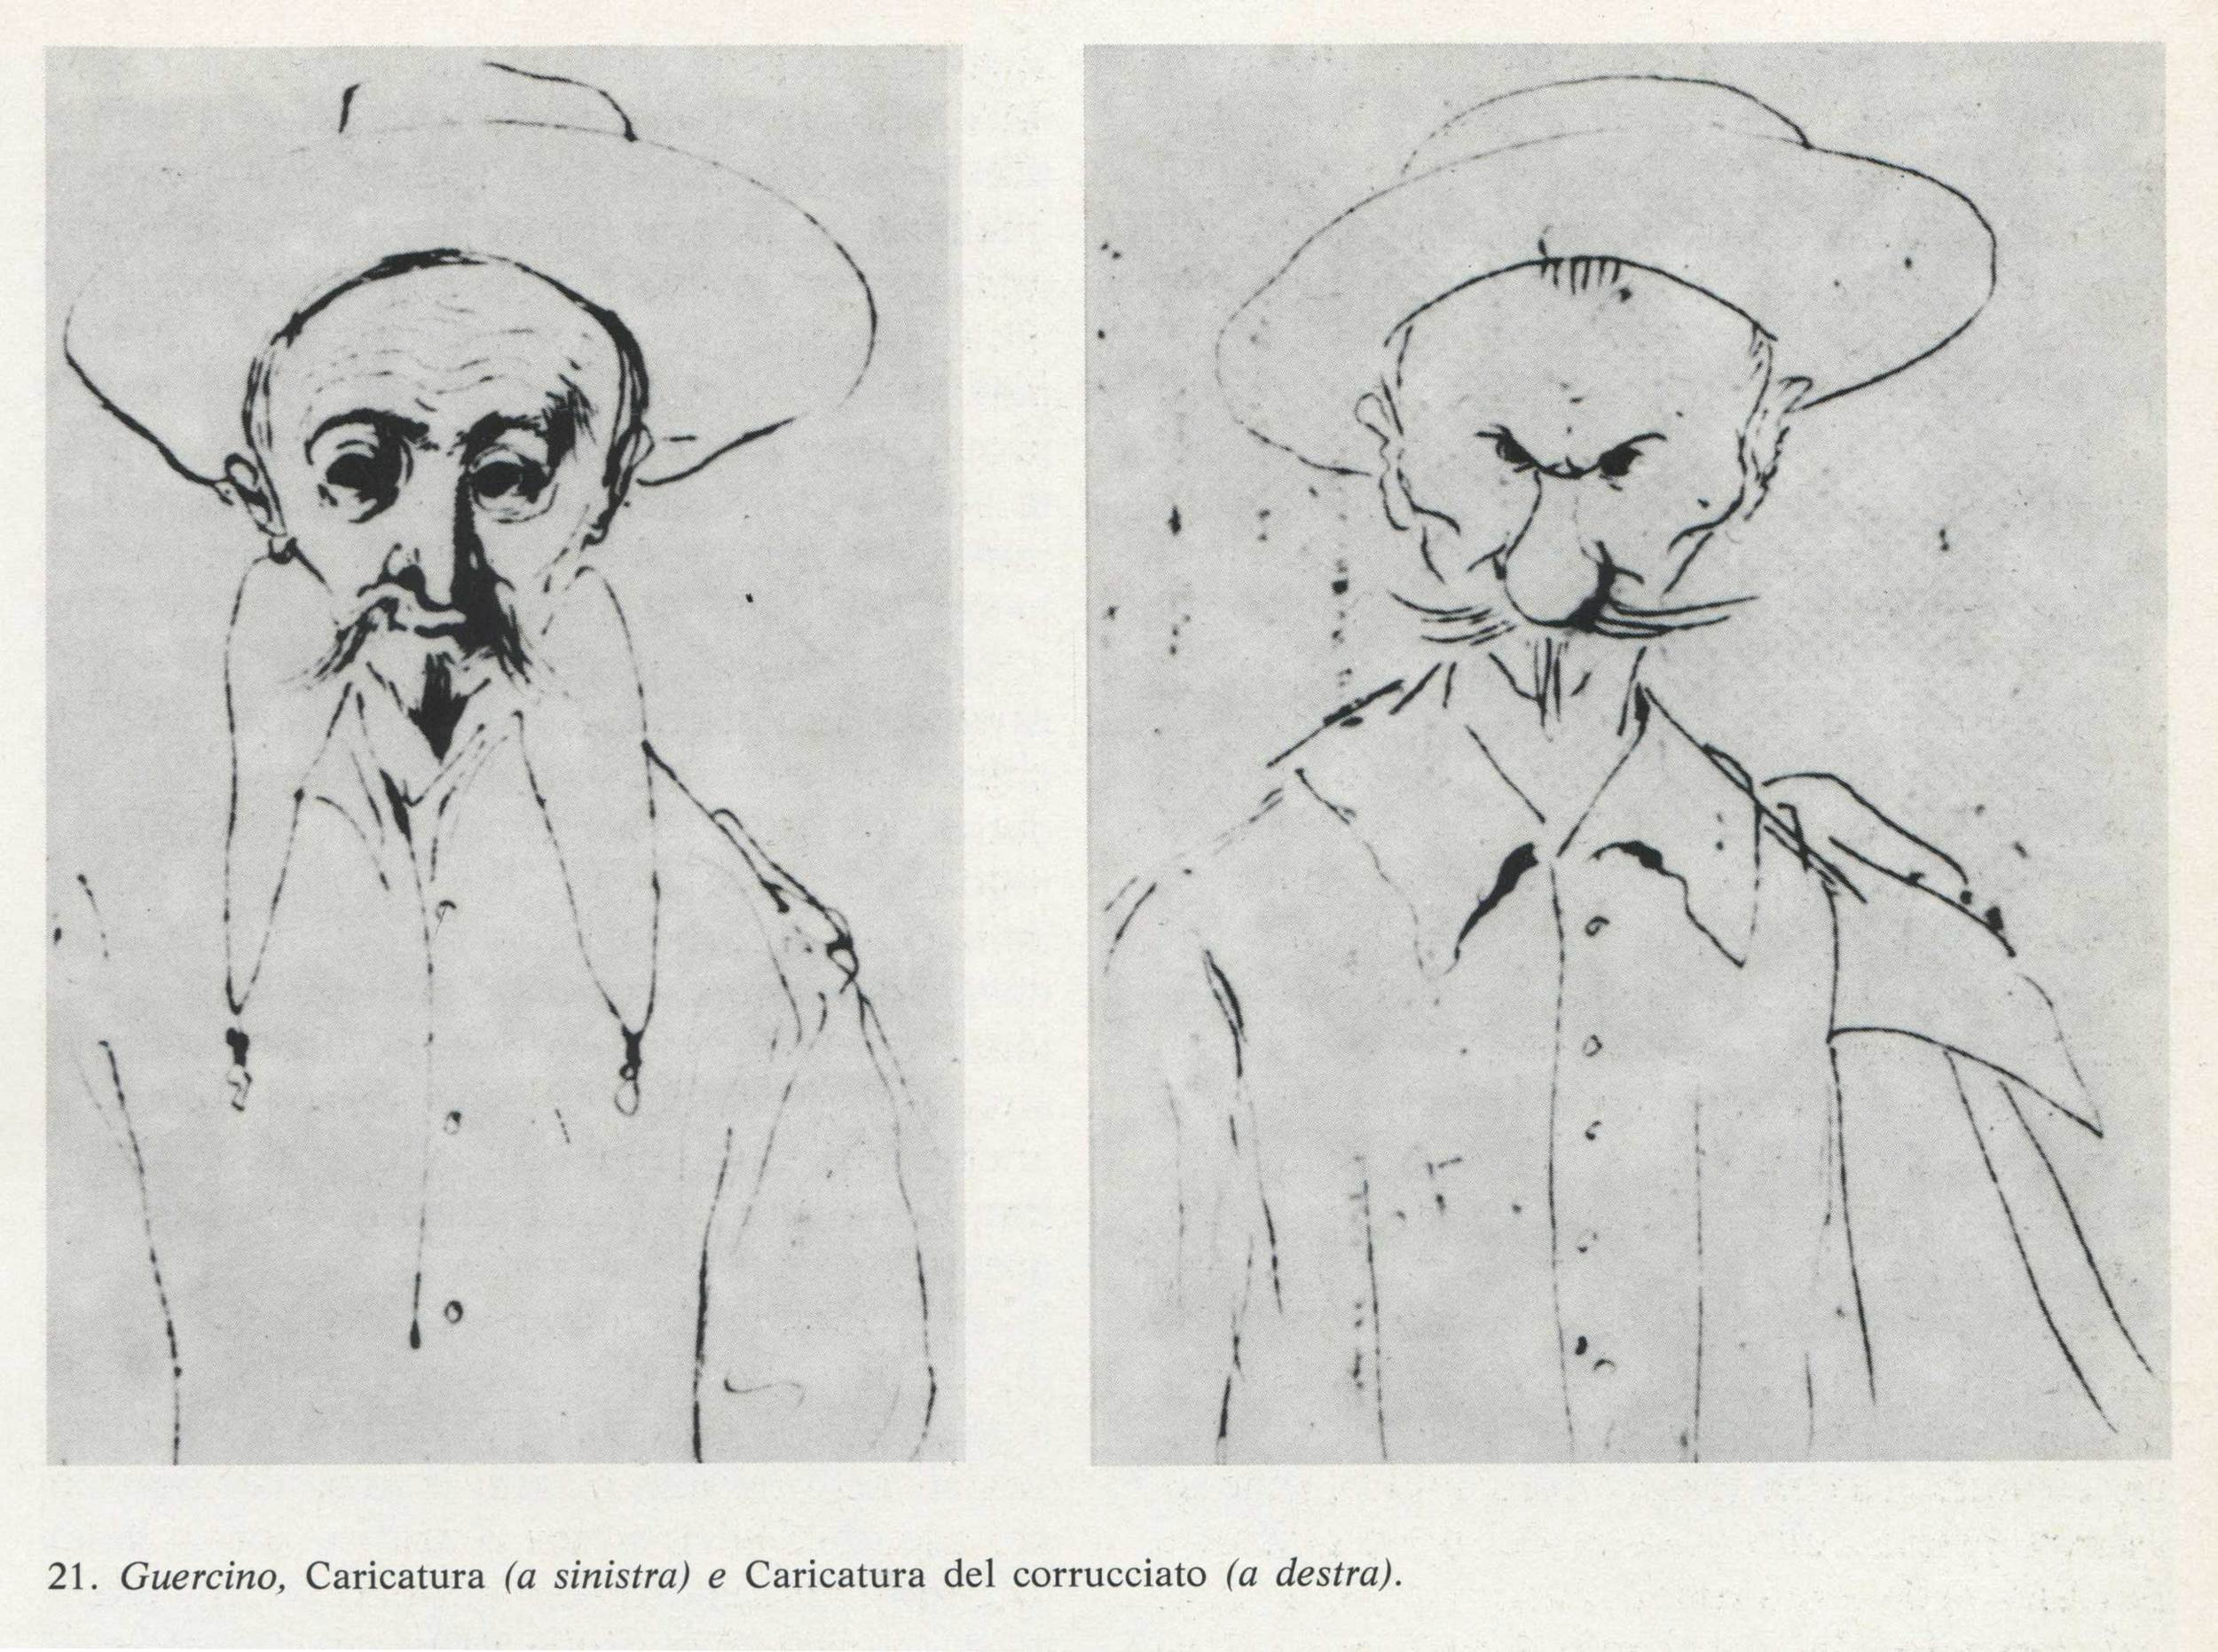 Caricature of the corrucciato